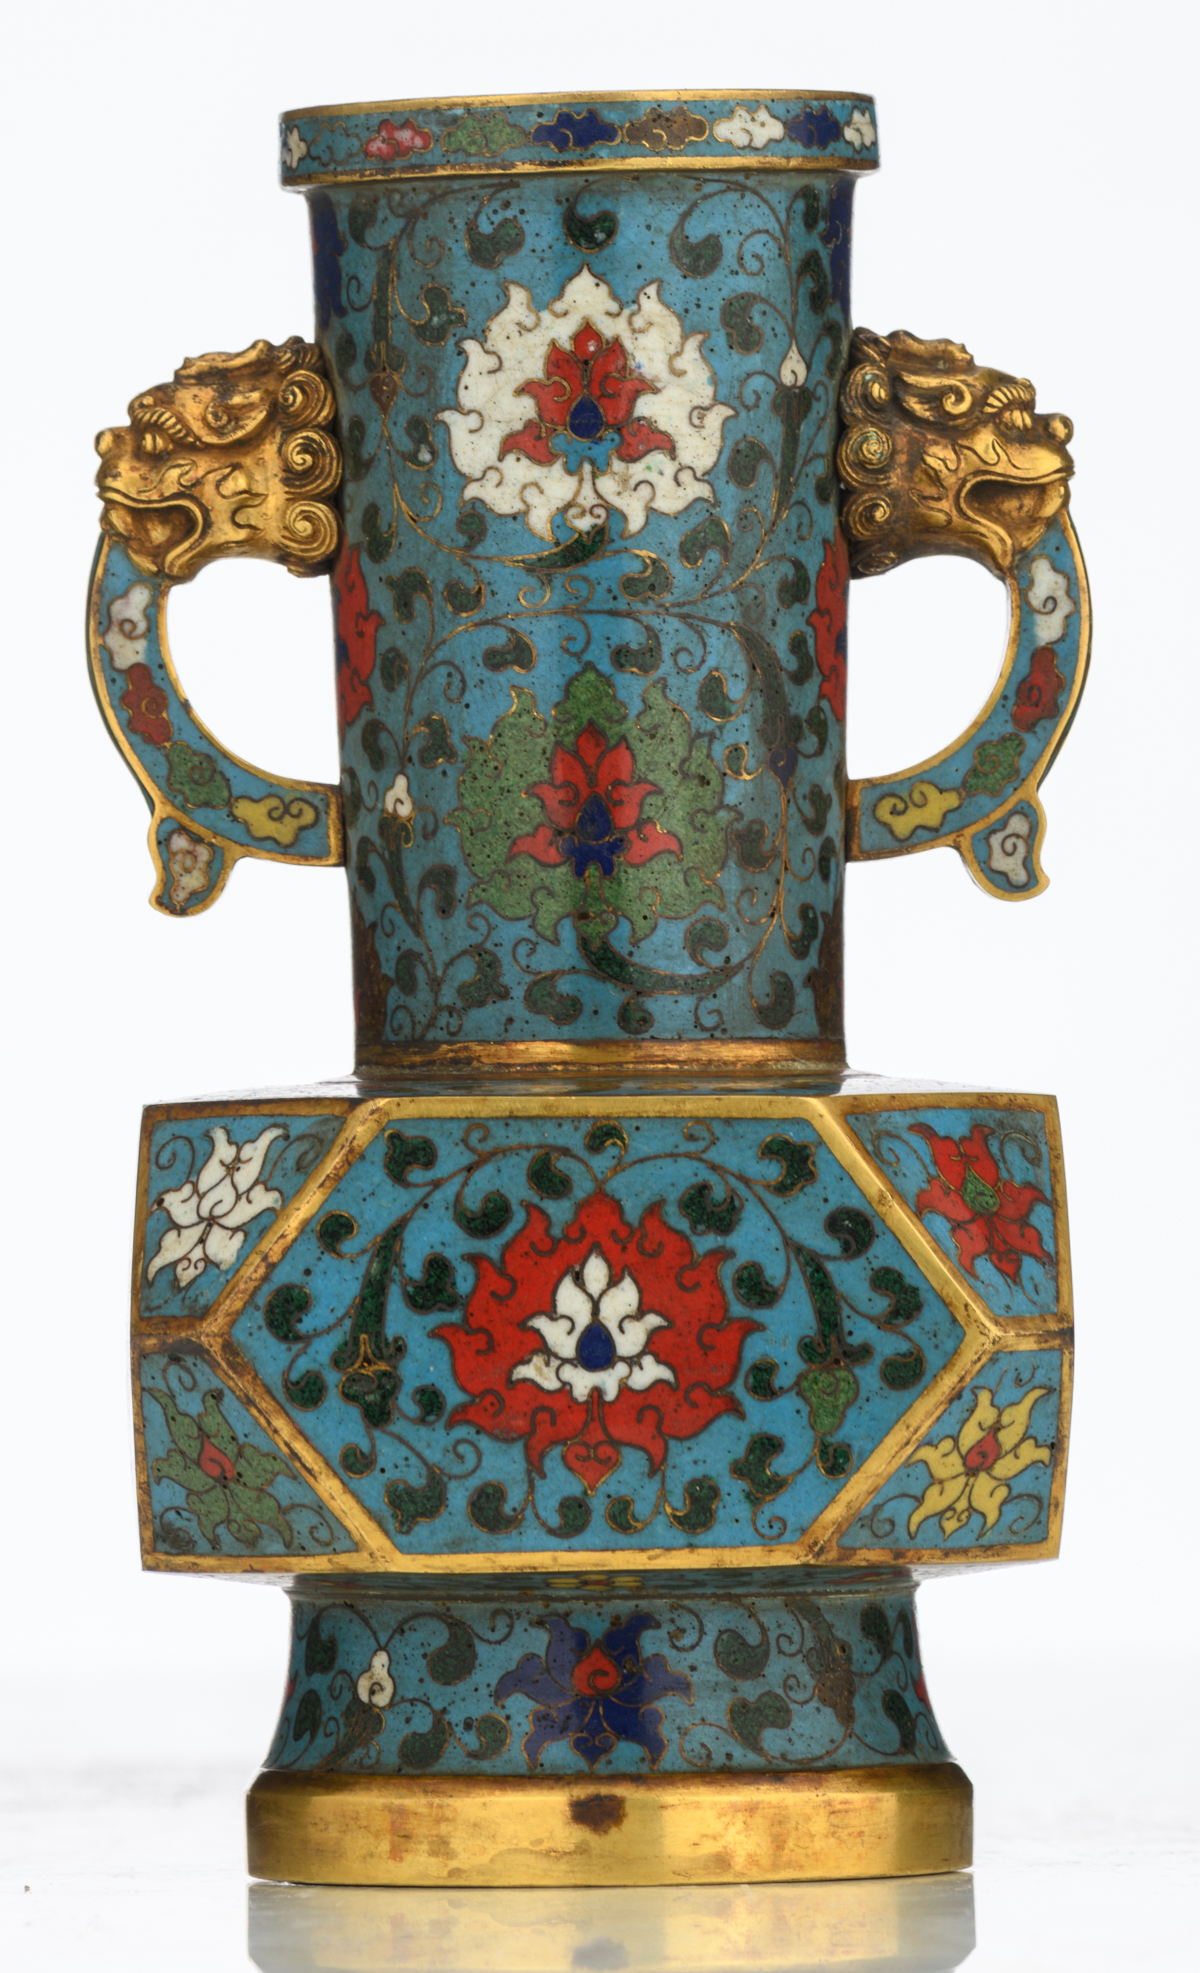 Lot 3 - A small Chinese floral decorated cloisonné bottle vase, the handles with lion's head, with a